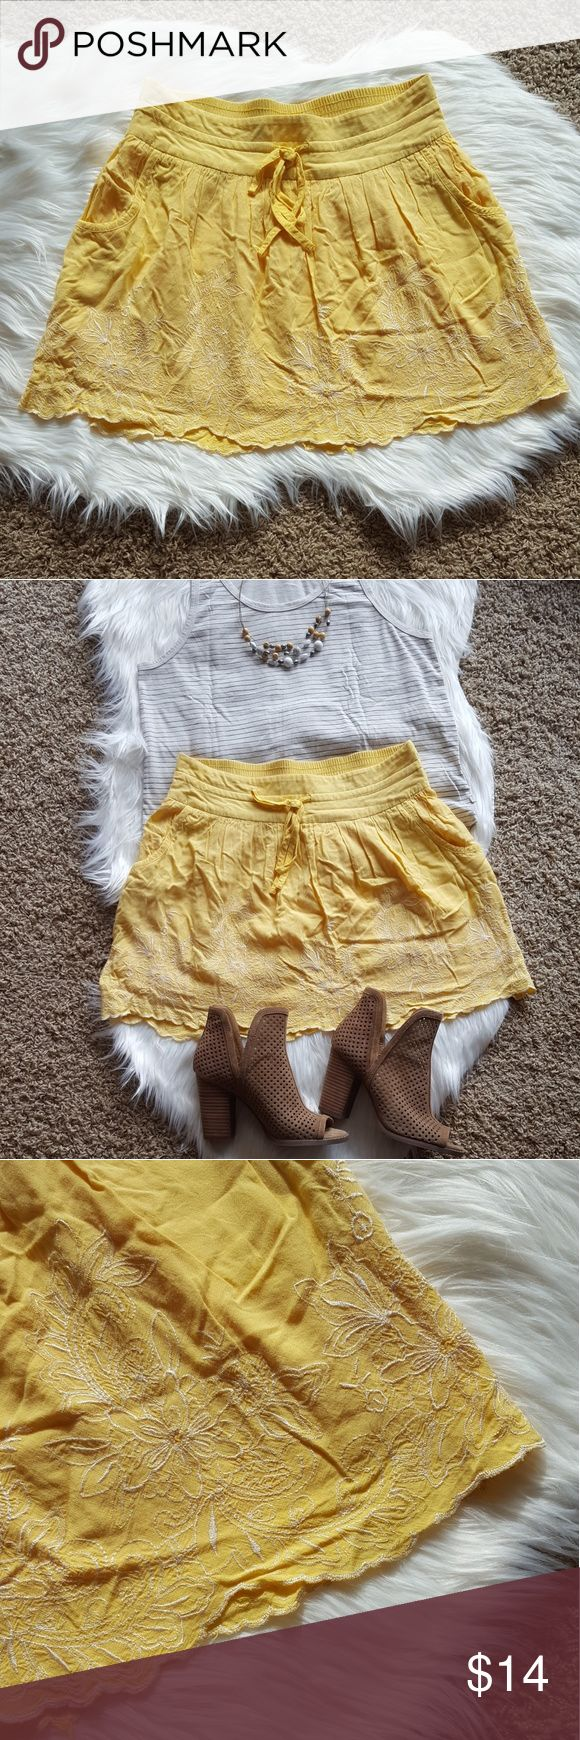 """Charlotte Russe Yellow Embroider Skirt Beautiful for spring! Yellow miniskirt with white floral embroider details and pockets! Also used to be a favorite of mine, but I don't wear skirts much anymore! Skirt is lined and also has scalloped edging...a lot of details going on here! In great condition with no rips or stains.   Length: 14.5"""" front, 15.5"""" back Width at waistband: 14.5""""and stretchy Charlotte Russe Skirts Mini"""